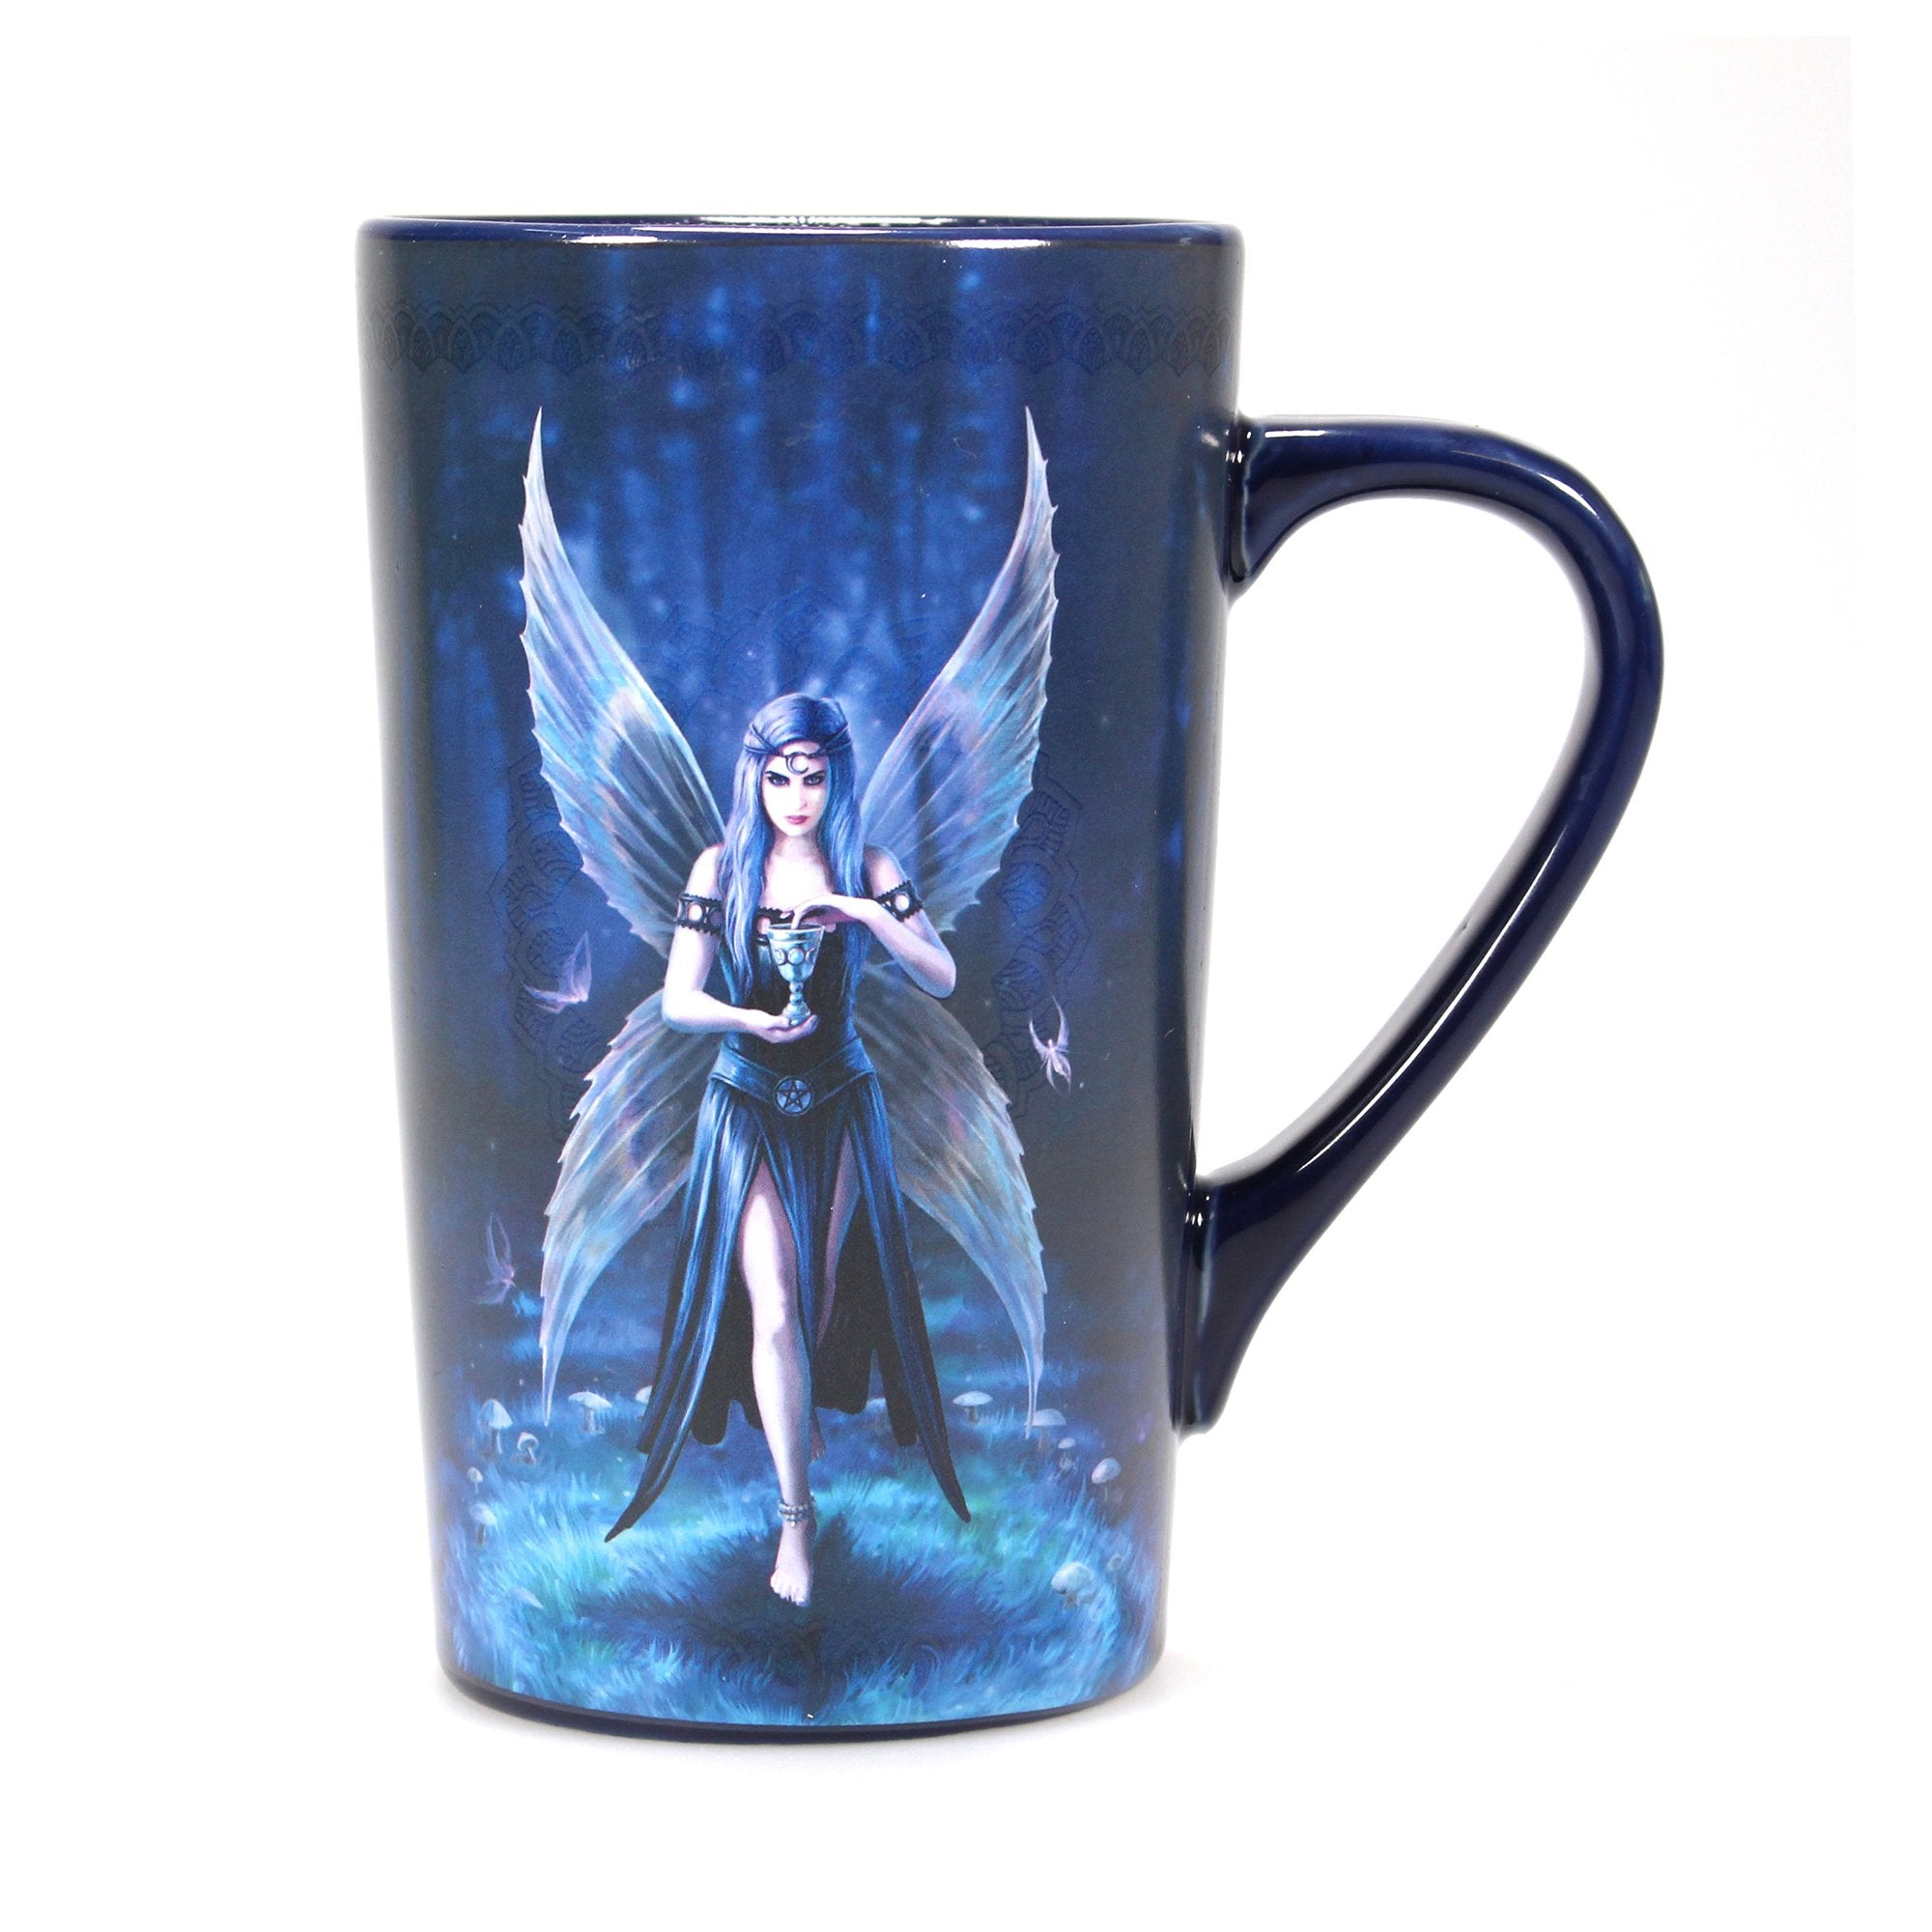 Anne Stokes Heat Changing Latte Mugs - Enchantment - Half Moon Bay US